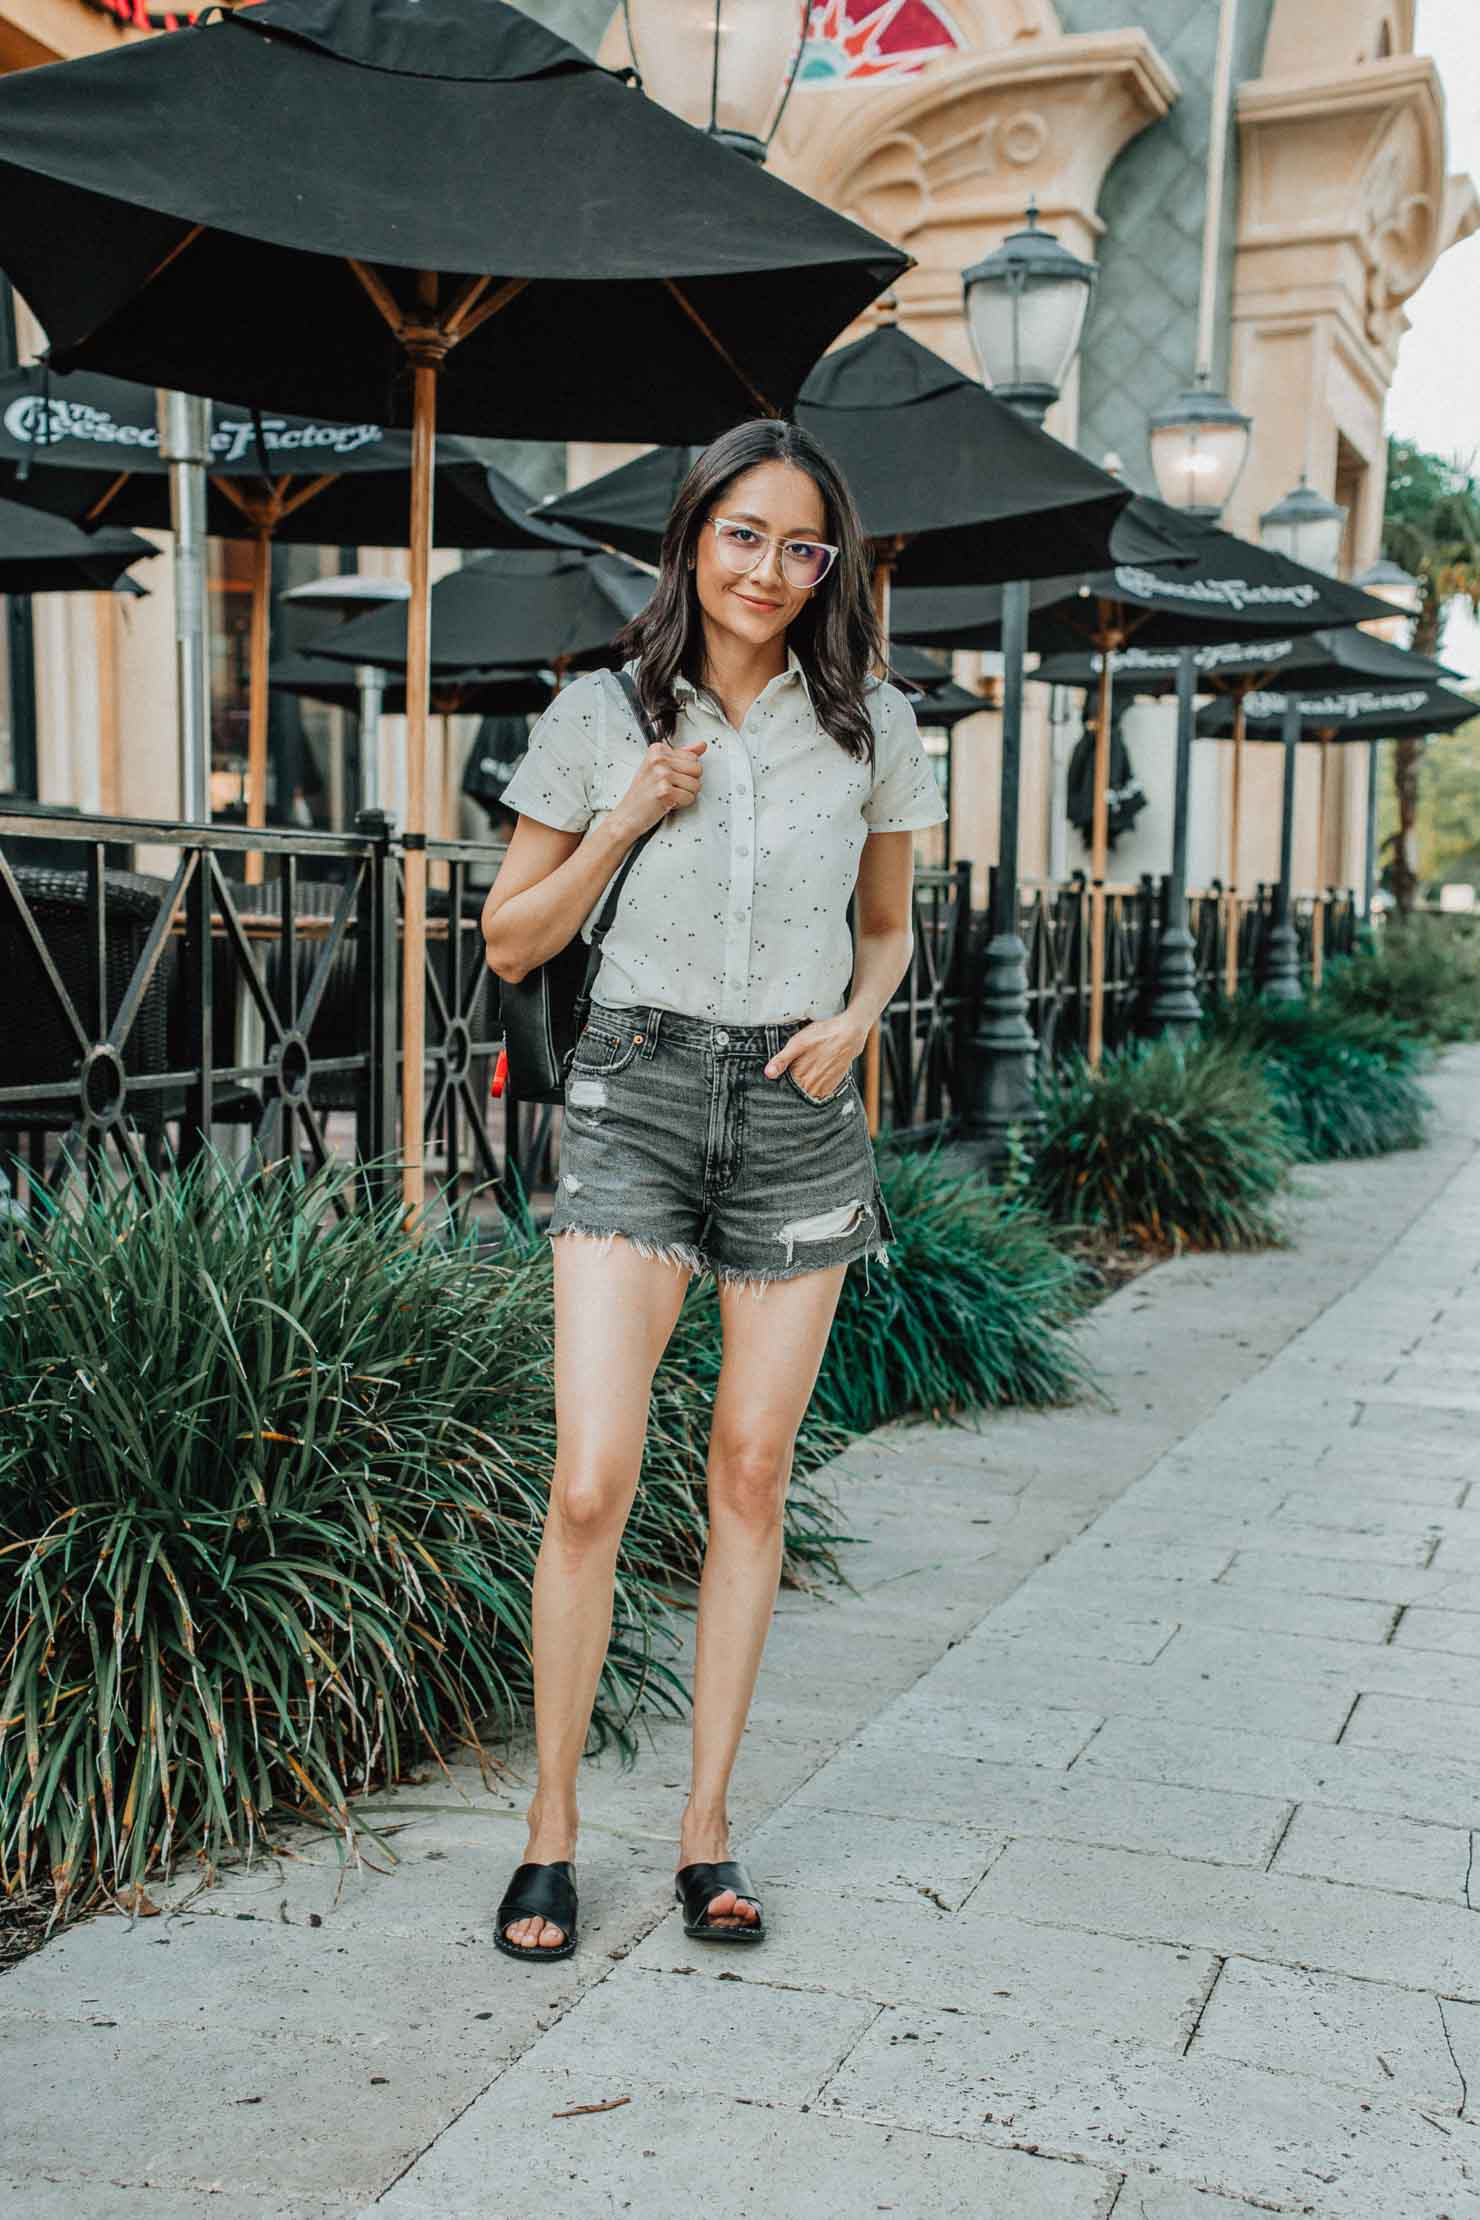 How to accessorize your summer looks with Coastal eyeglasses | Lilly Beltran, Houston based fashion blogger